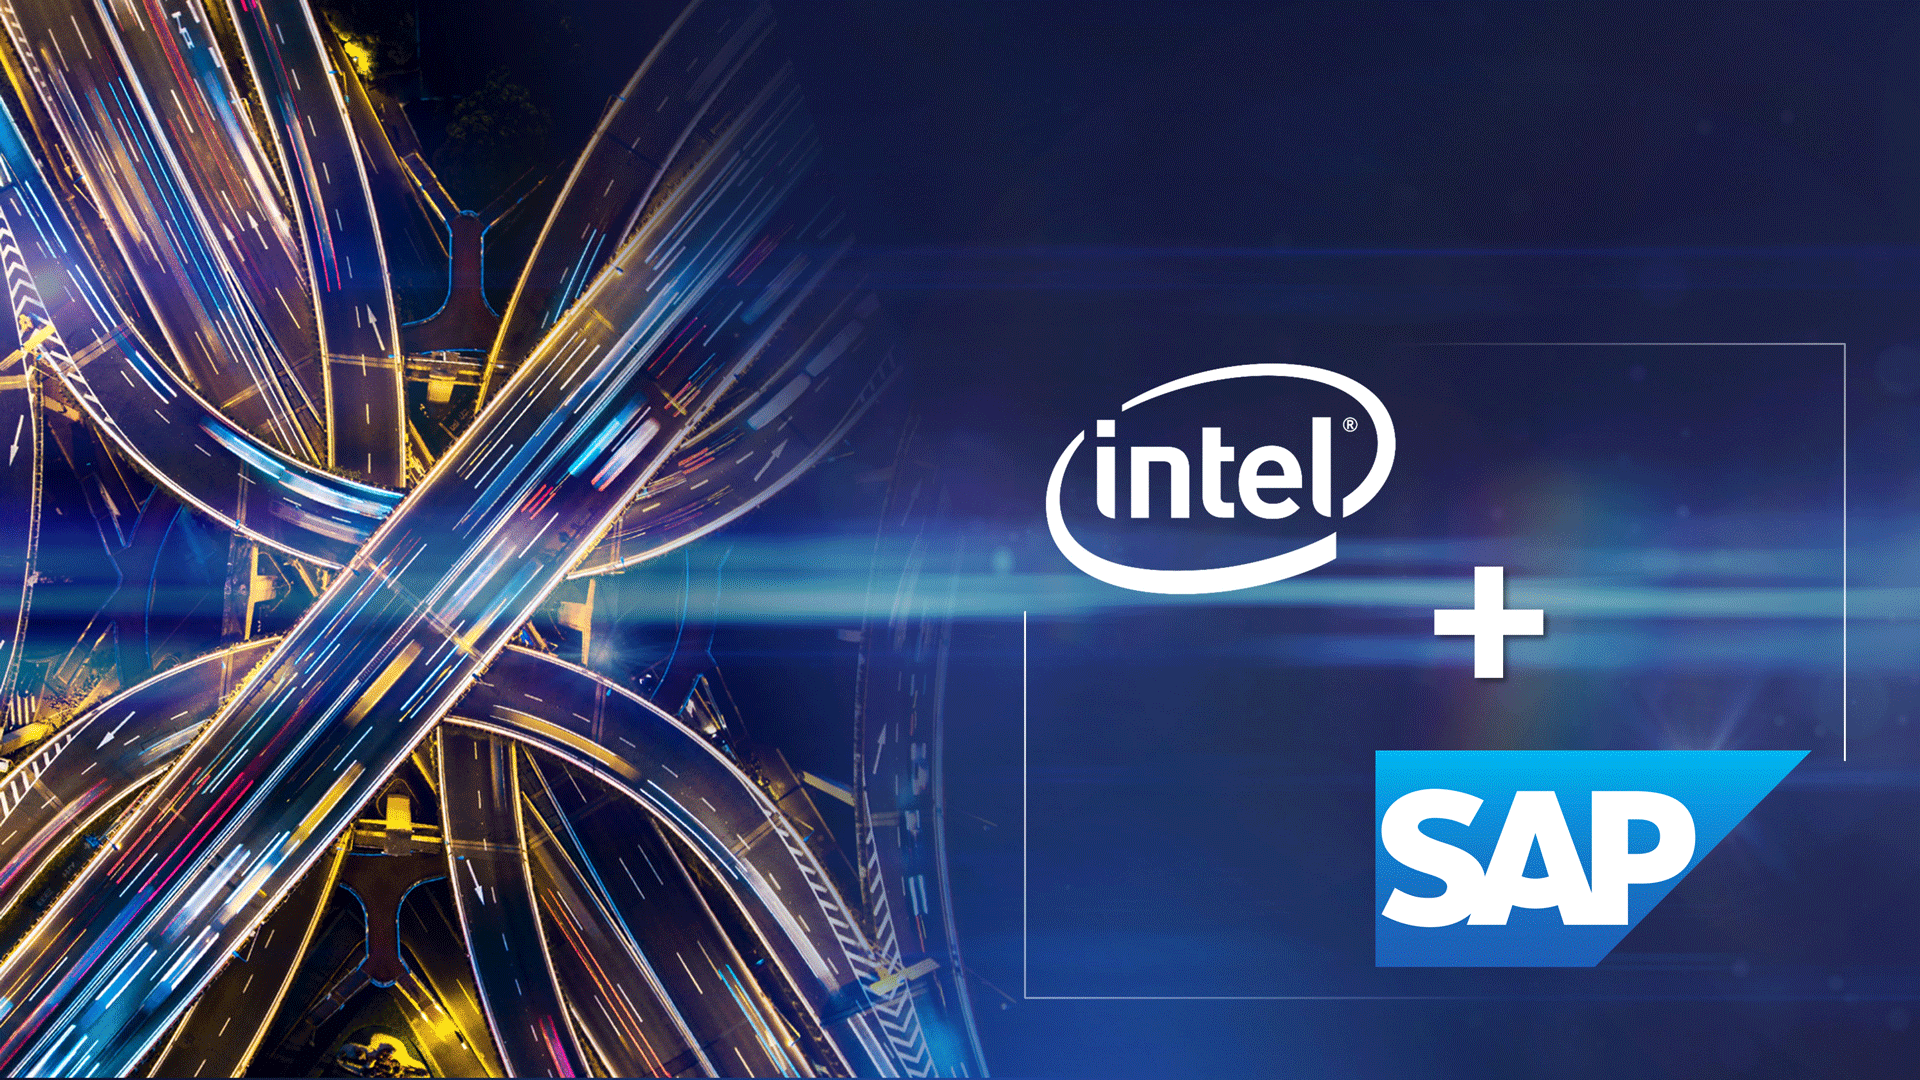 Intel SAP Partnership Announcement